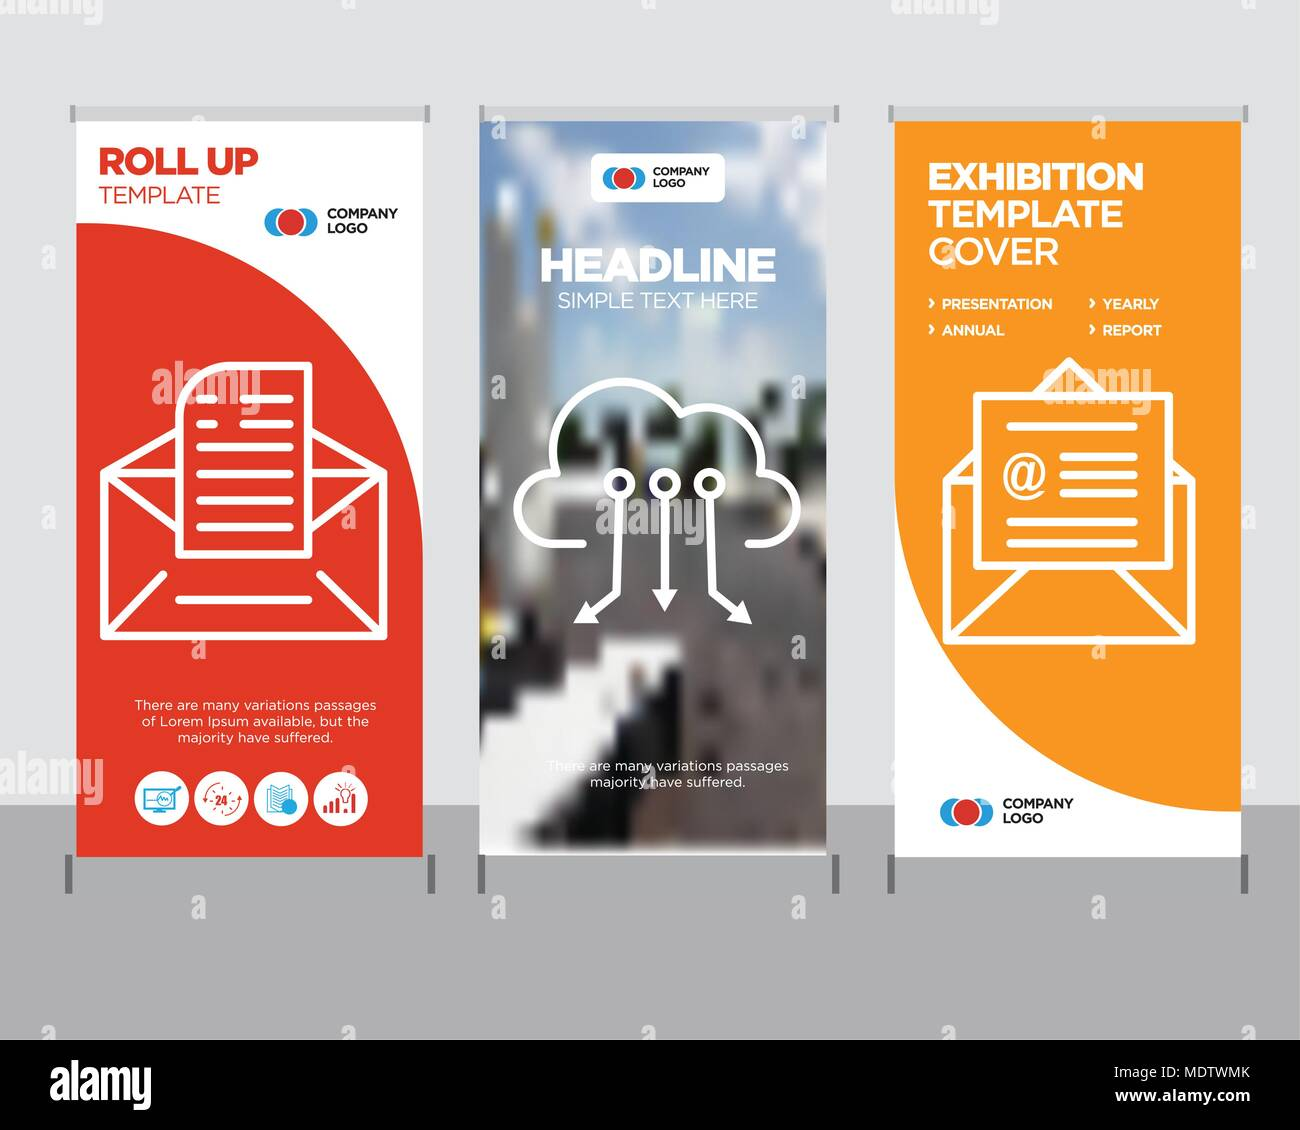 on mail modern business roll up banner design template cloud